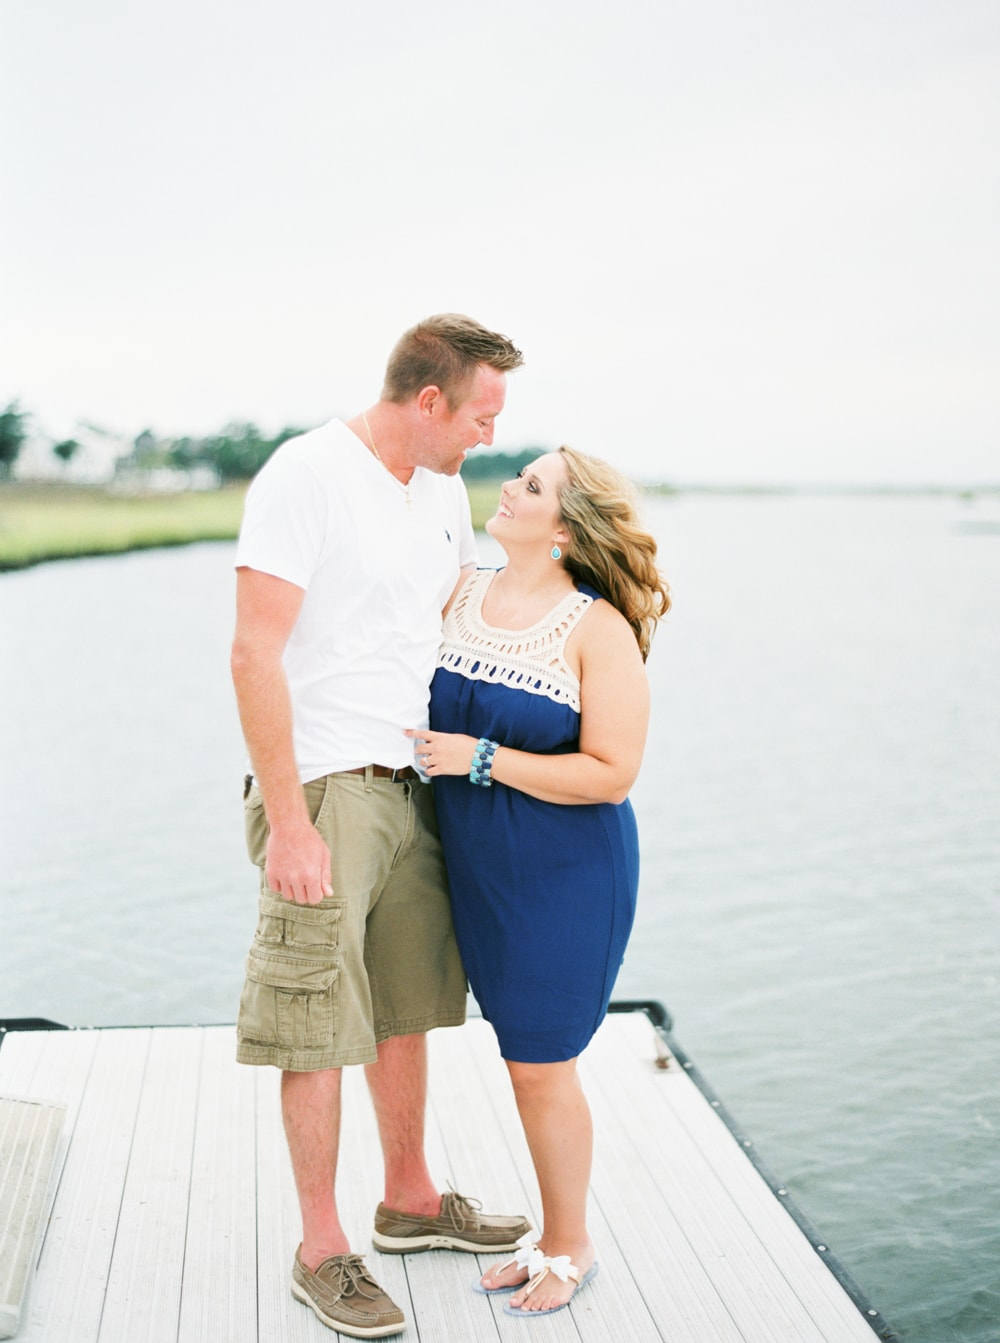 north-carolina-engagement-photography-7-min.jpg